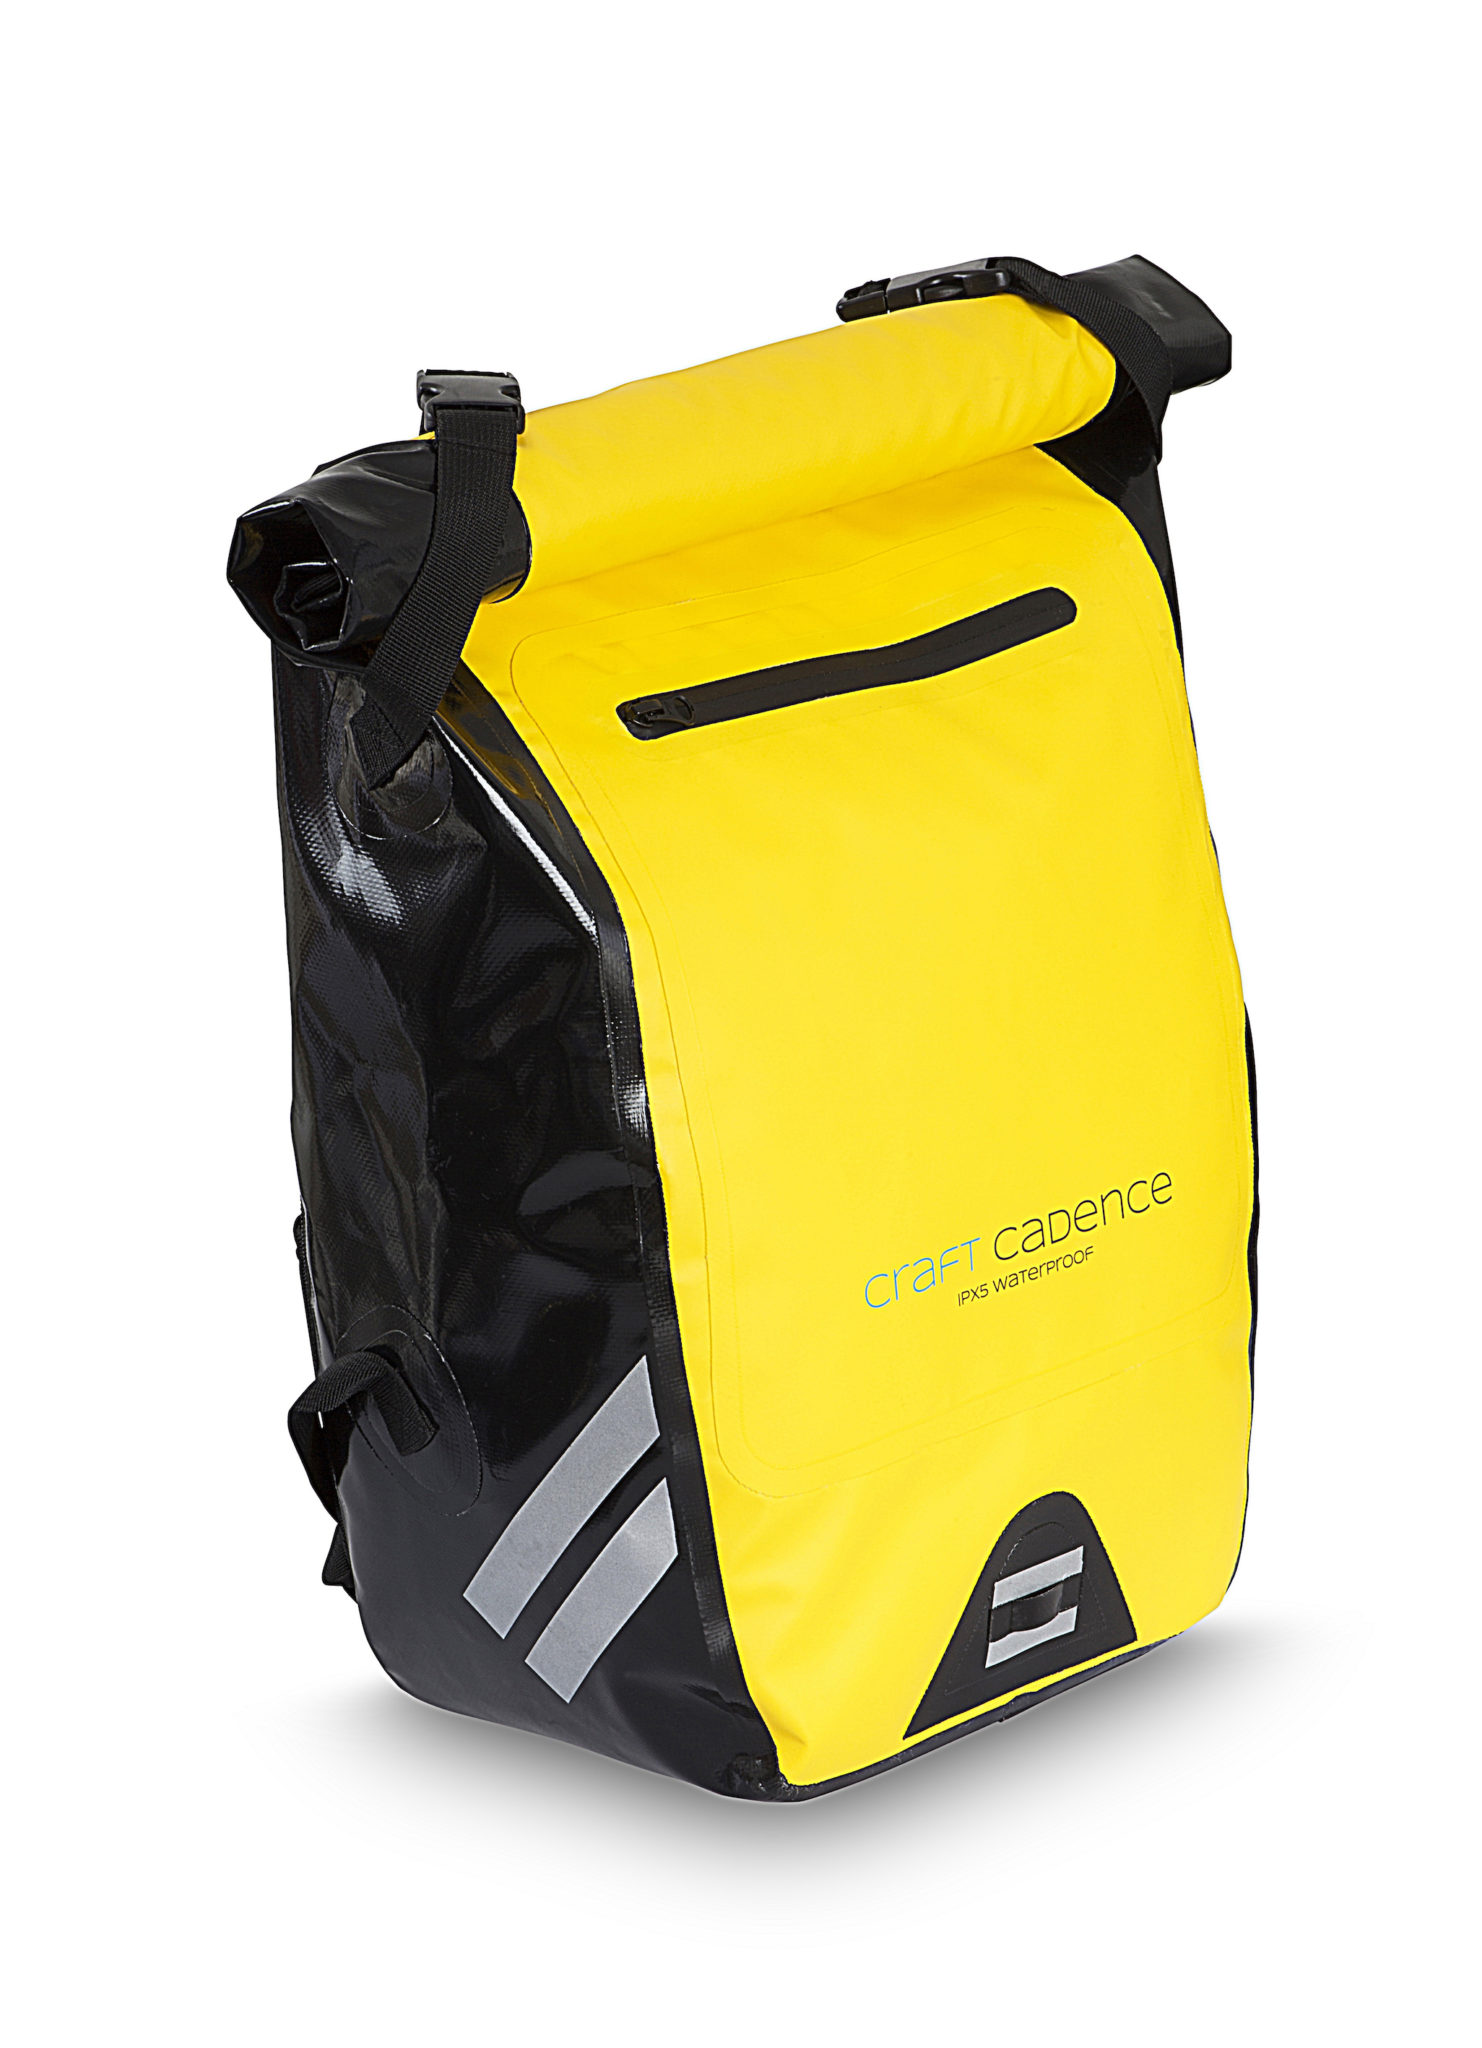 Craft Cadence Backpack Preview